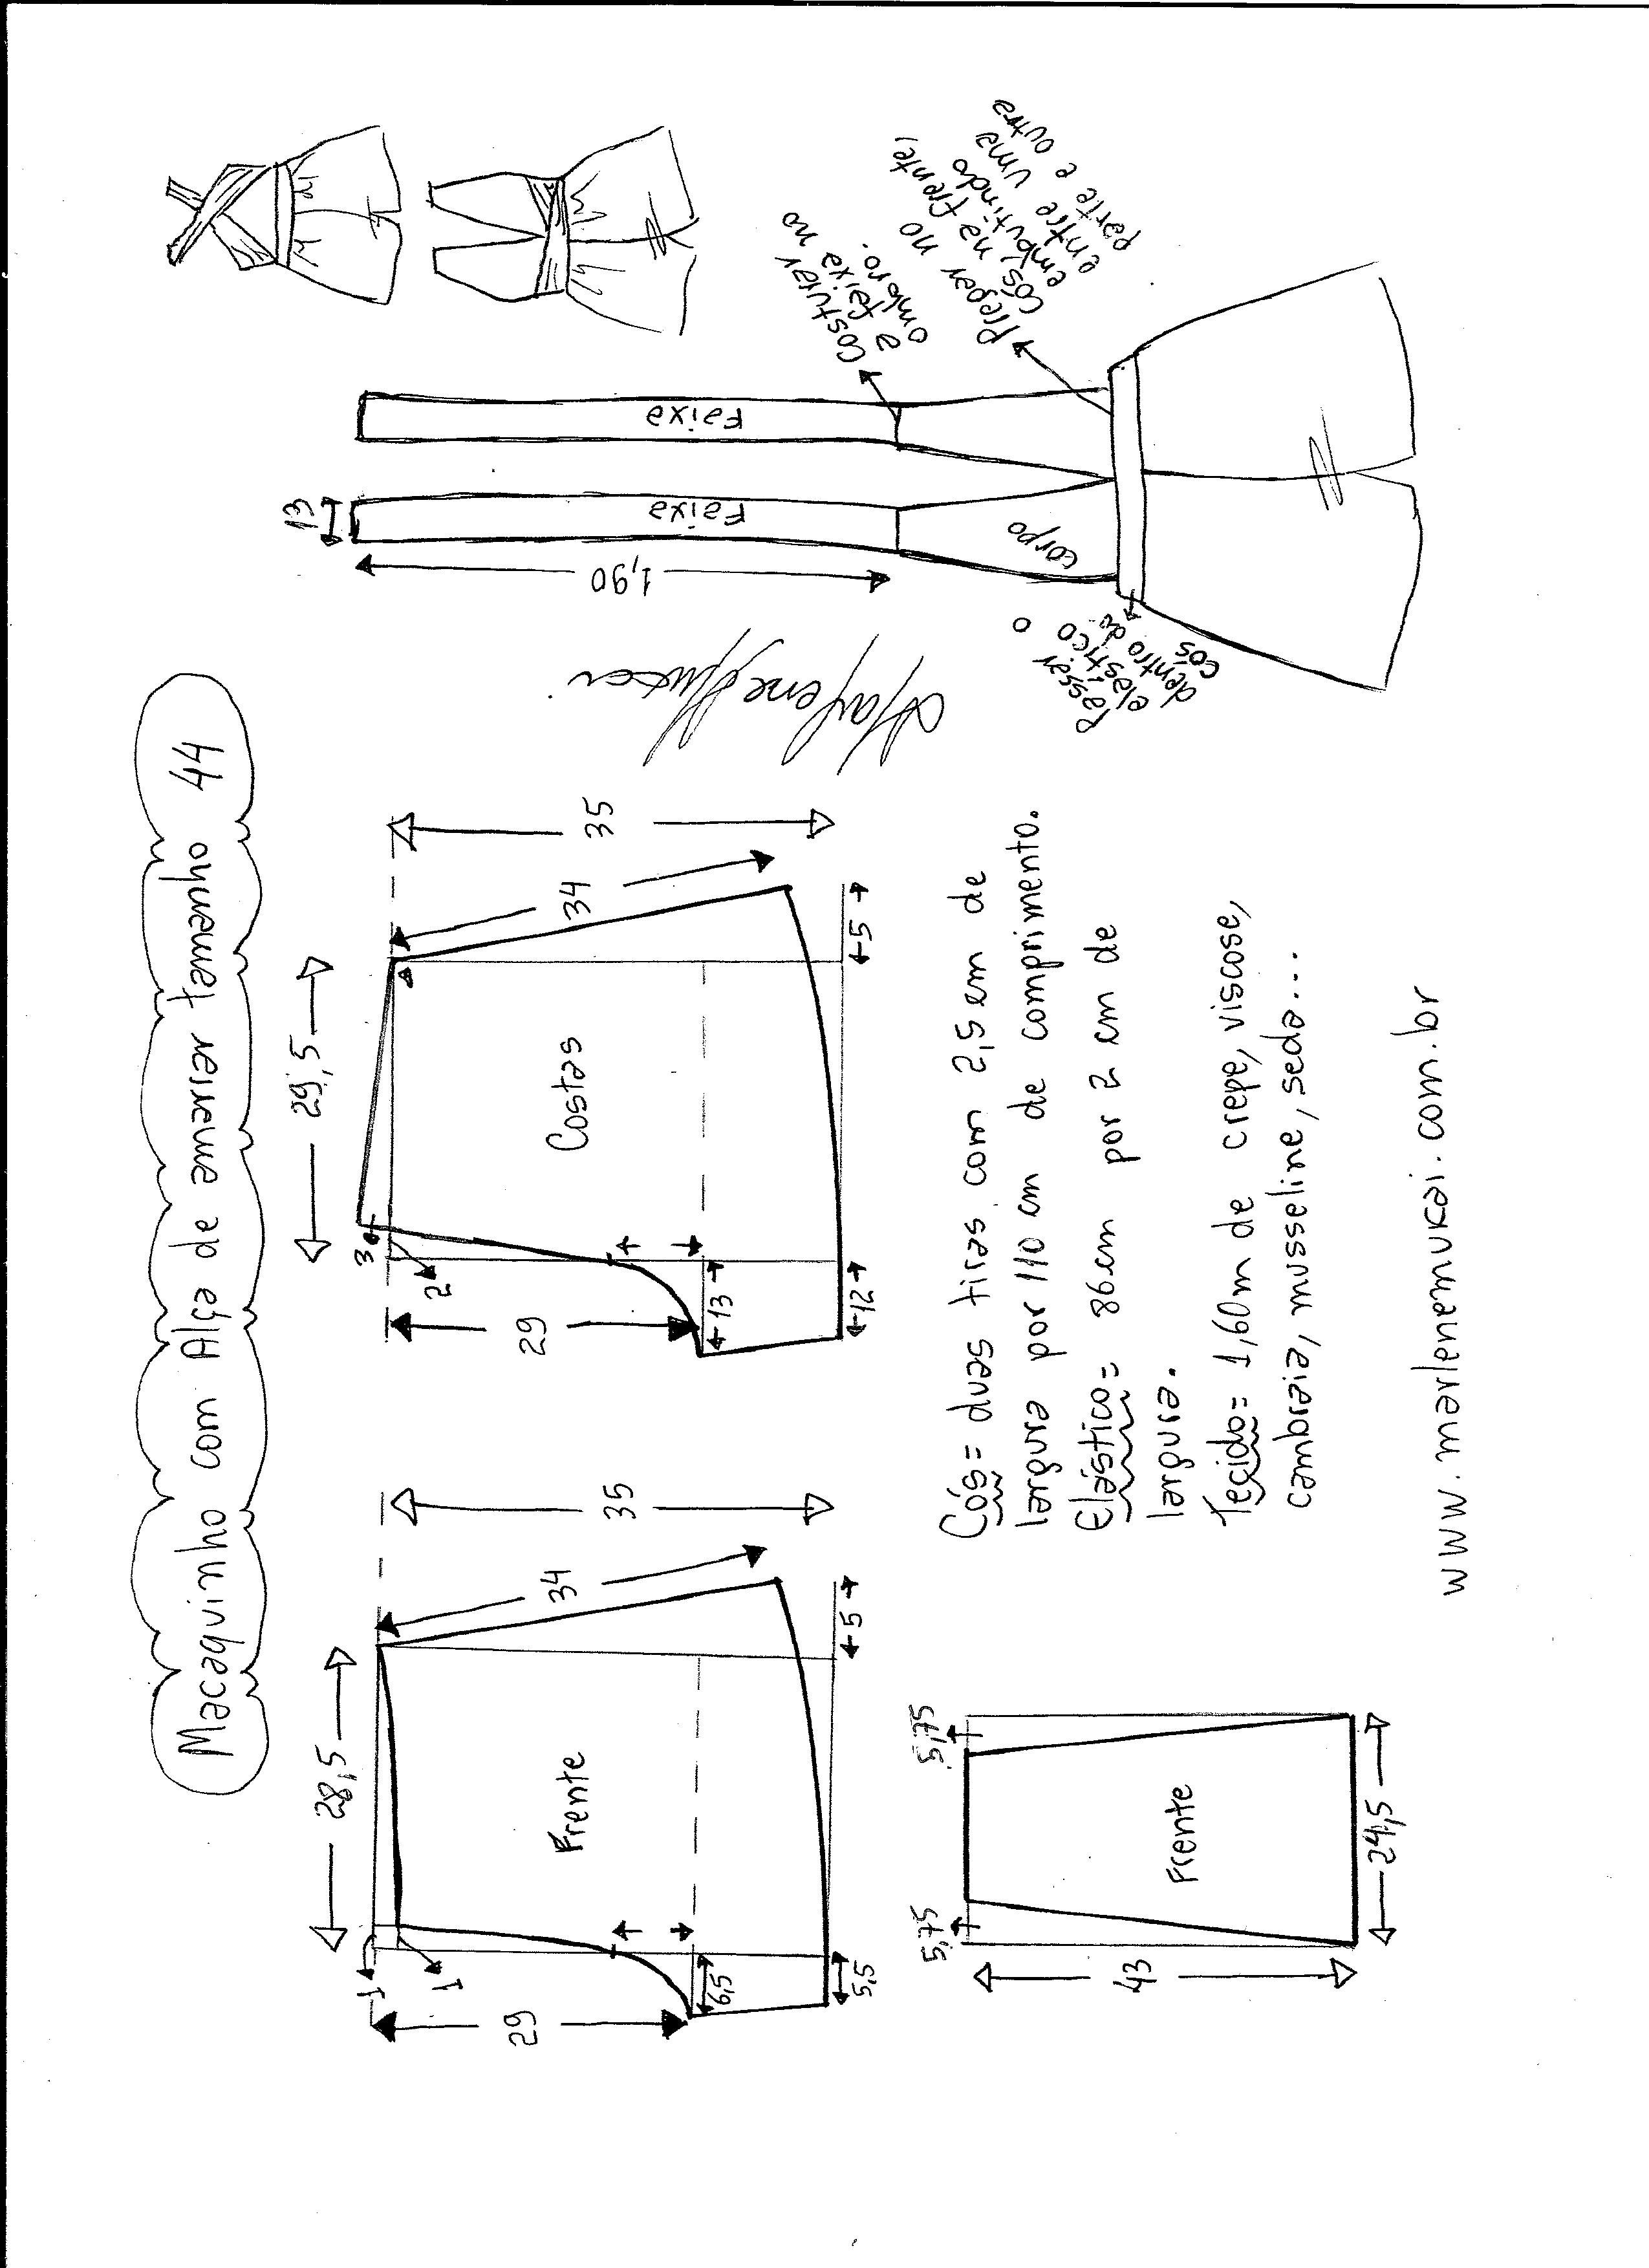 Pin by Elaine Marques on Costura | Pinterest | Sewing, Pattern and ...